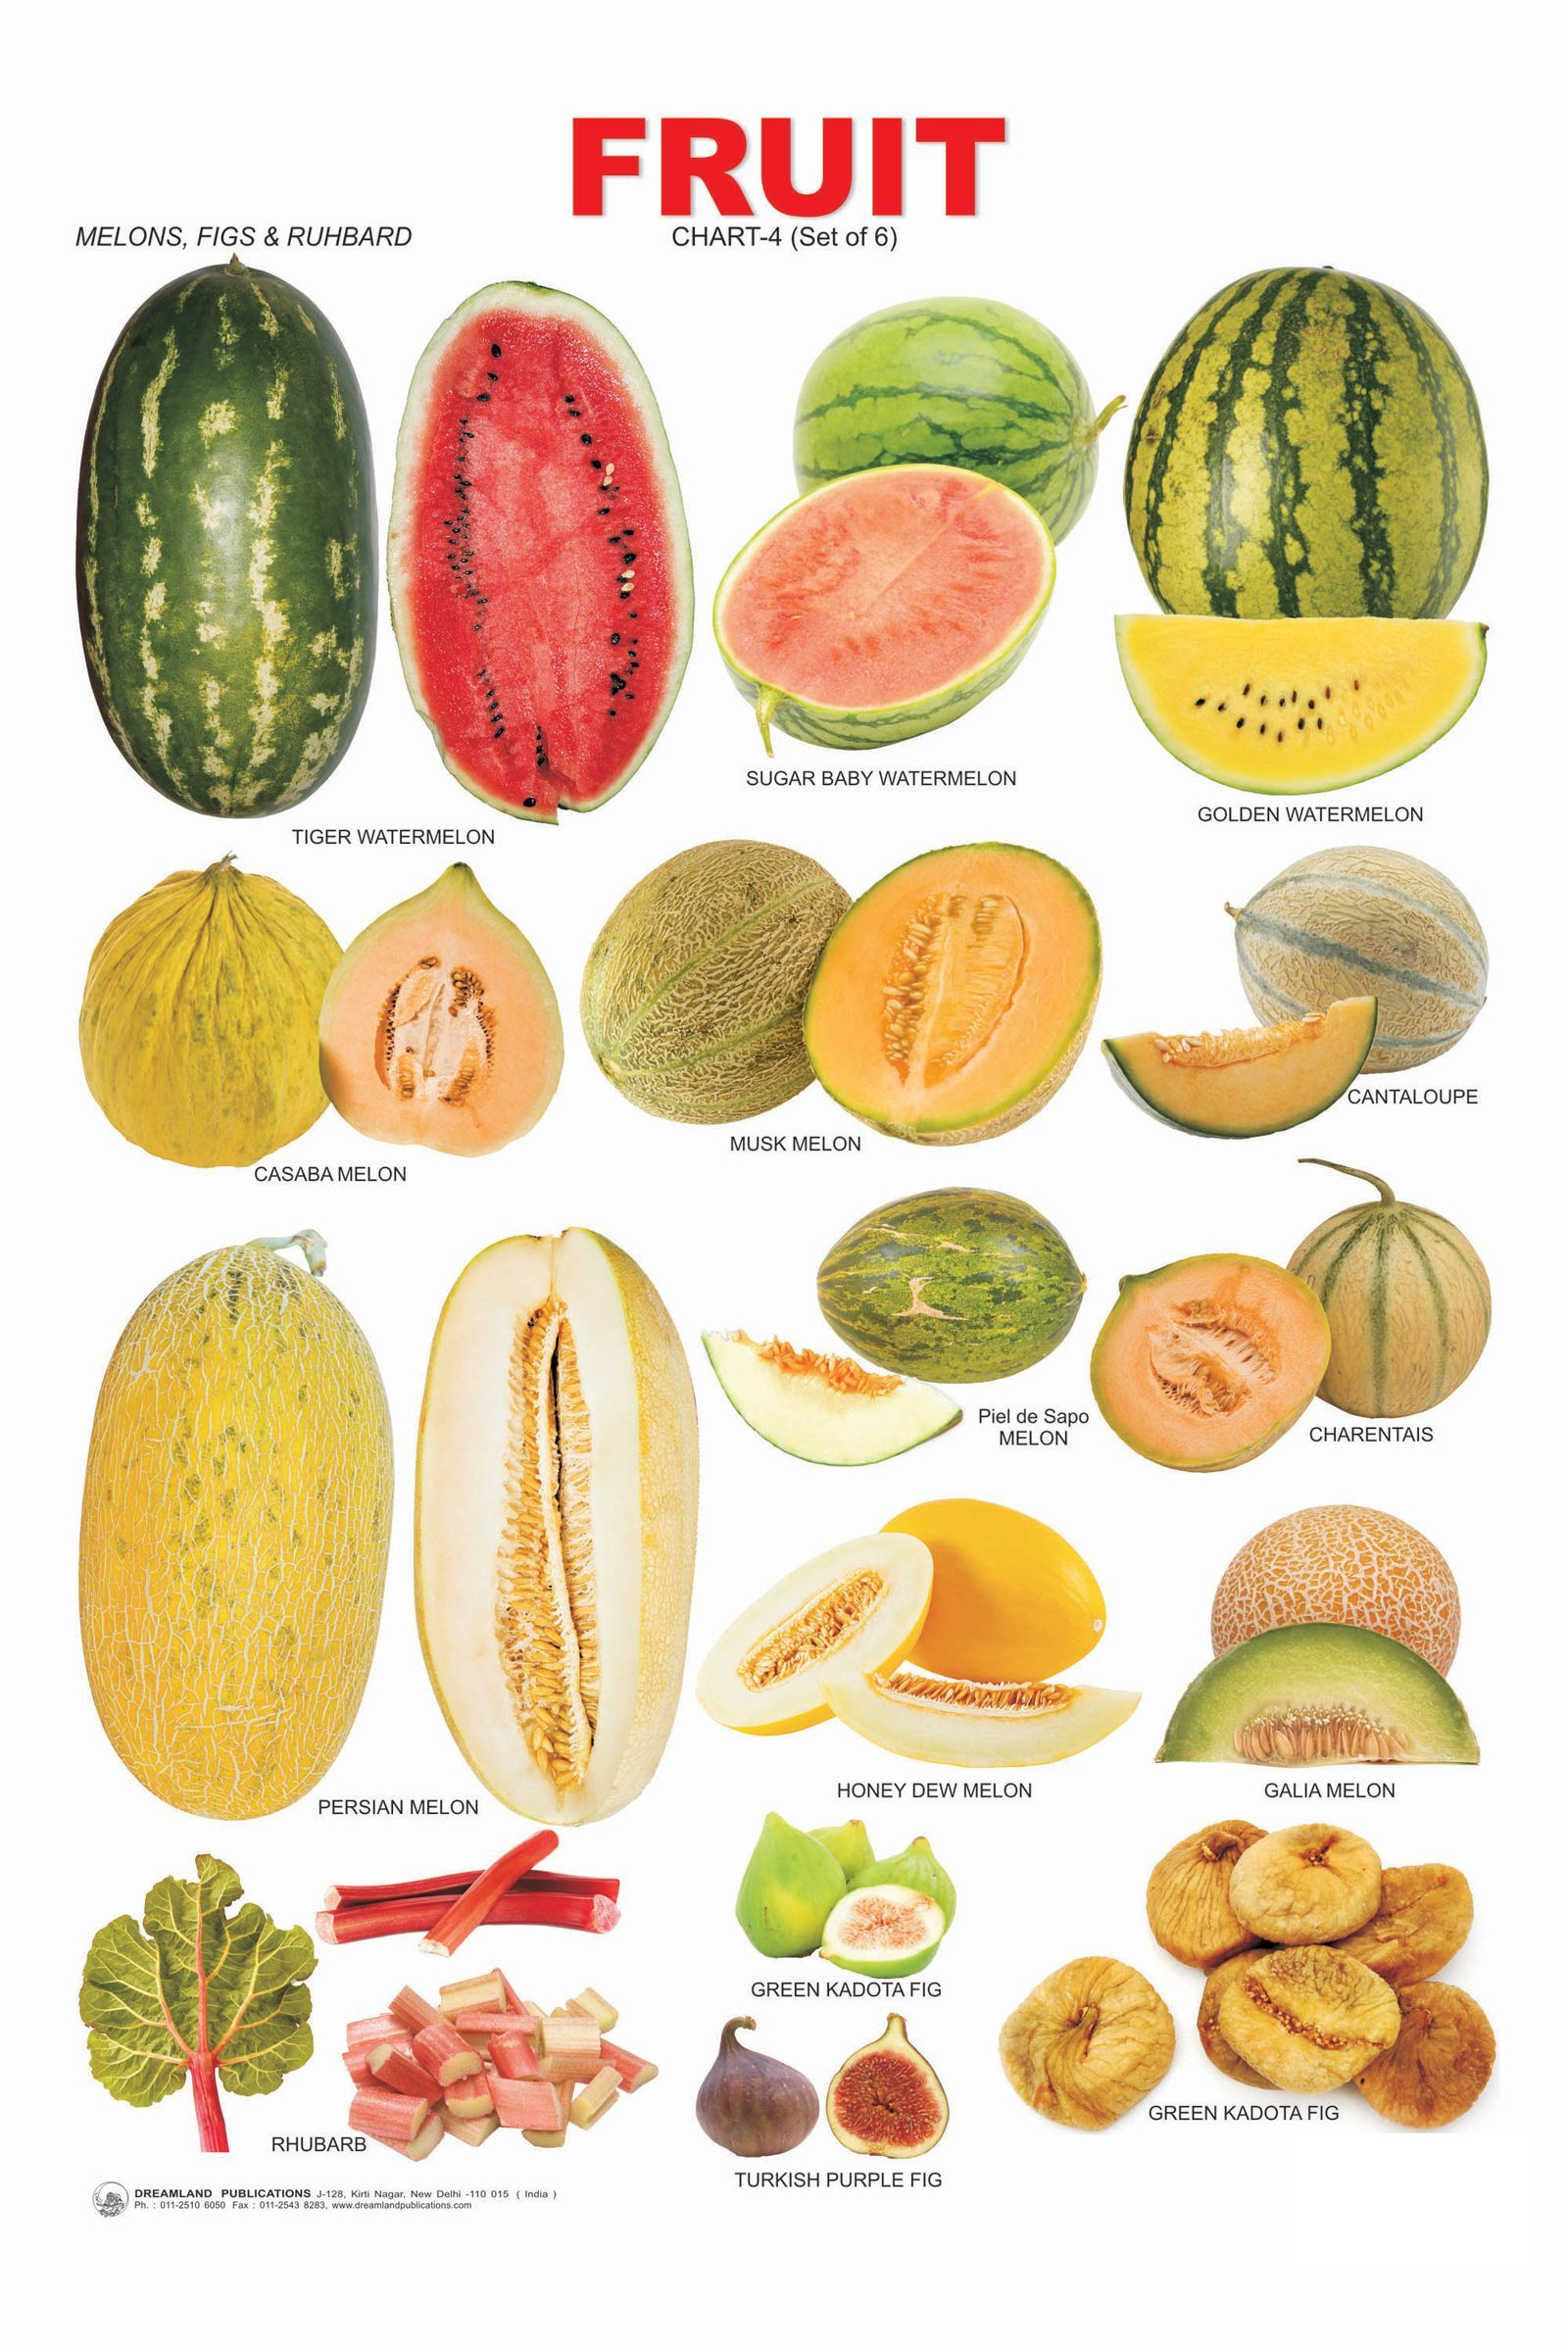 81097a.jpg (1600×2400) VEGETABLES AND FRUIT LIST NAMES